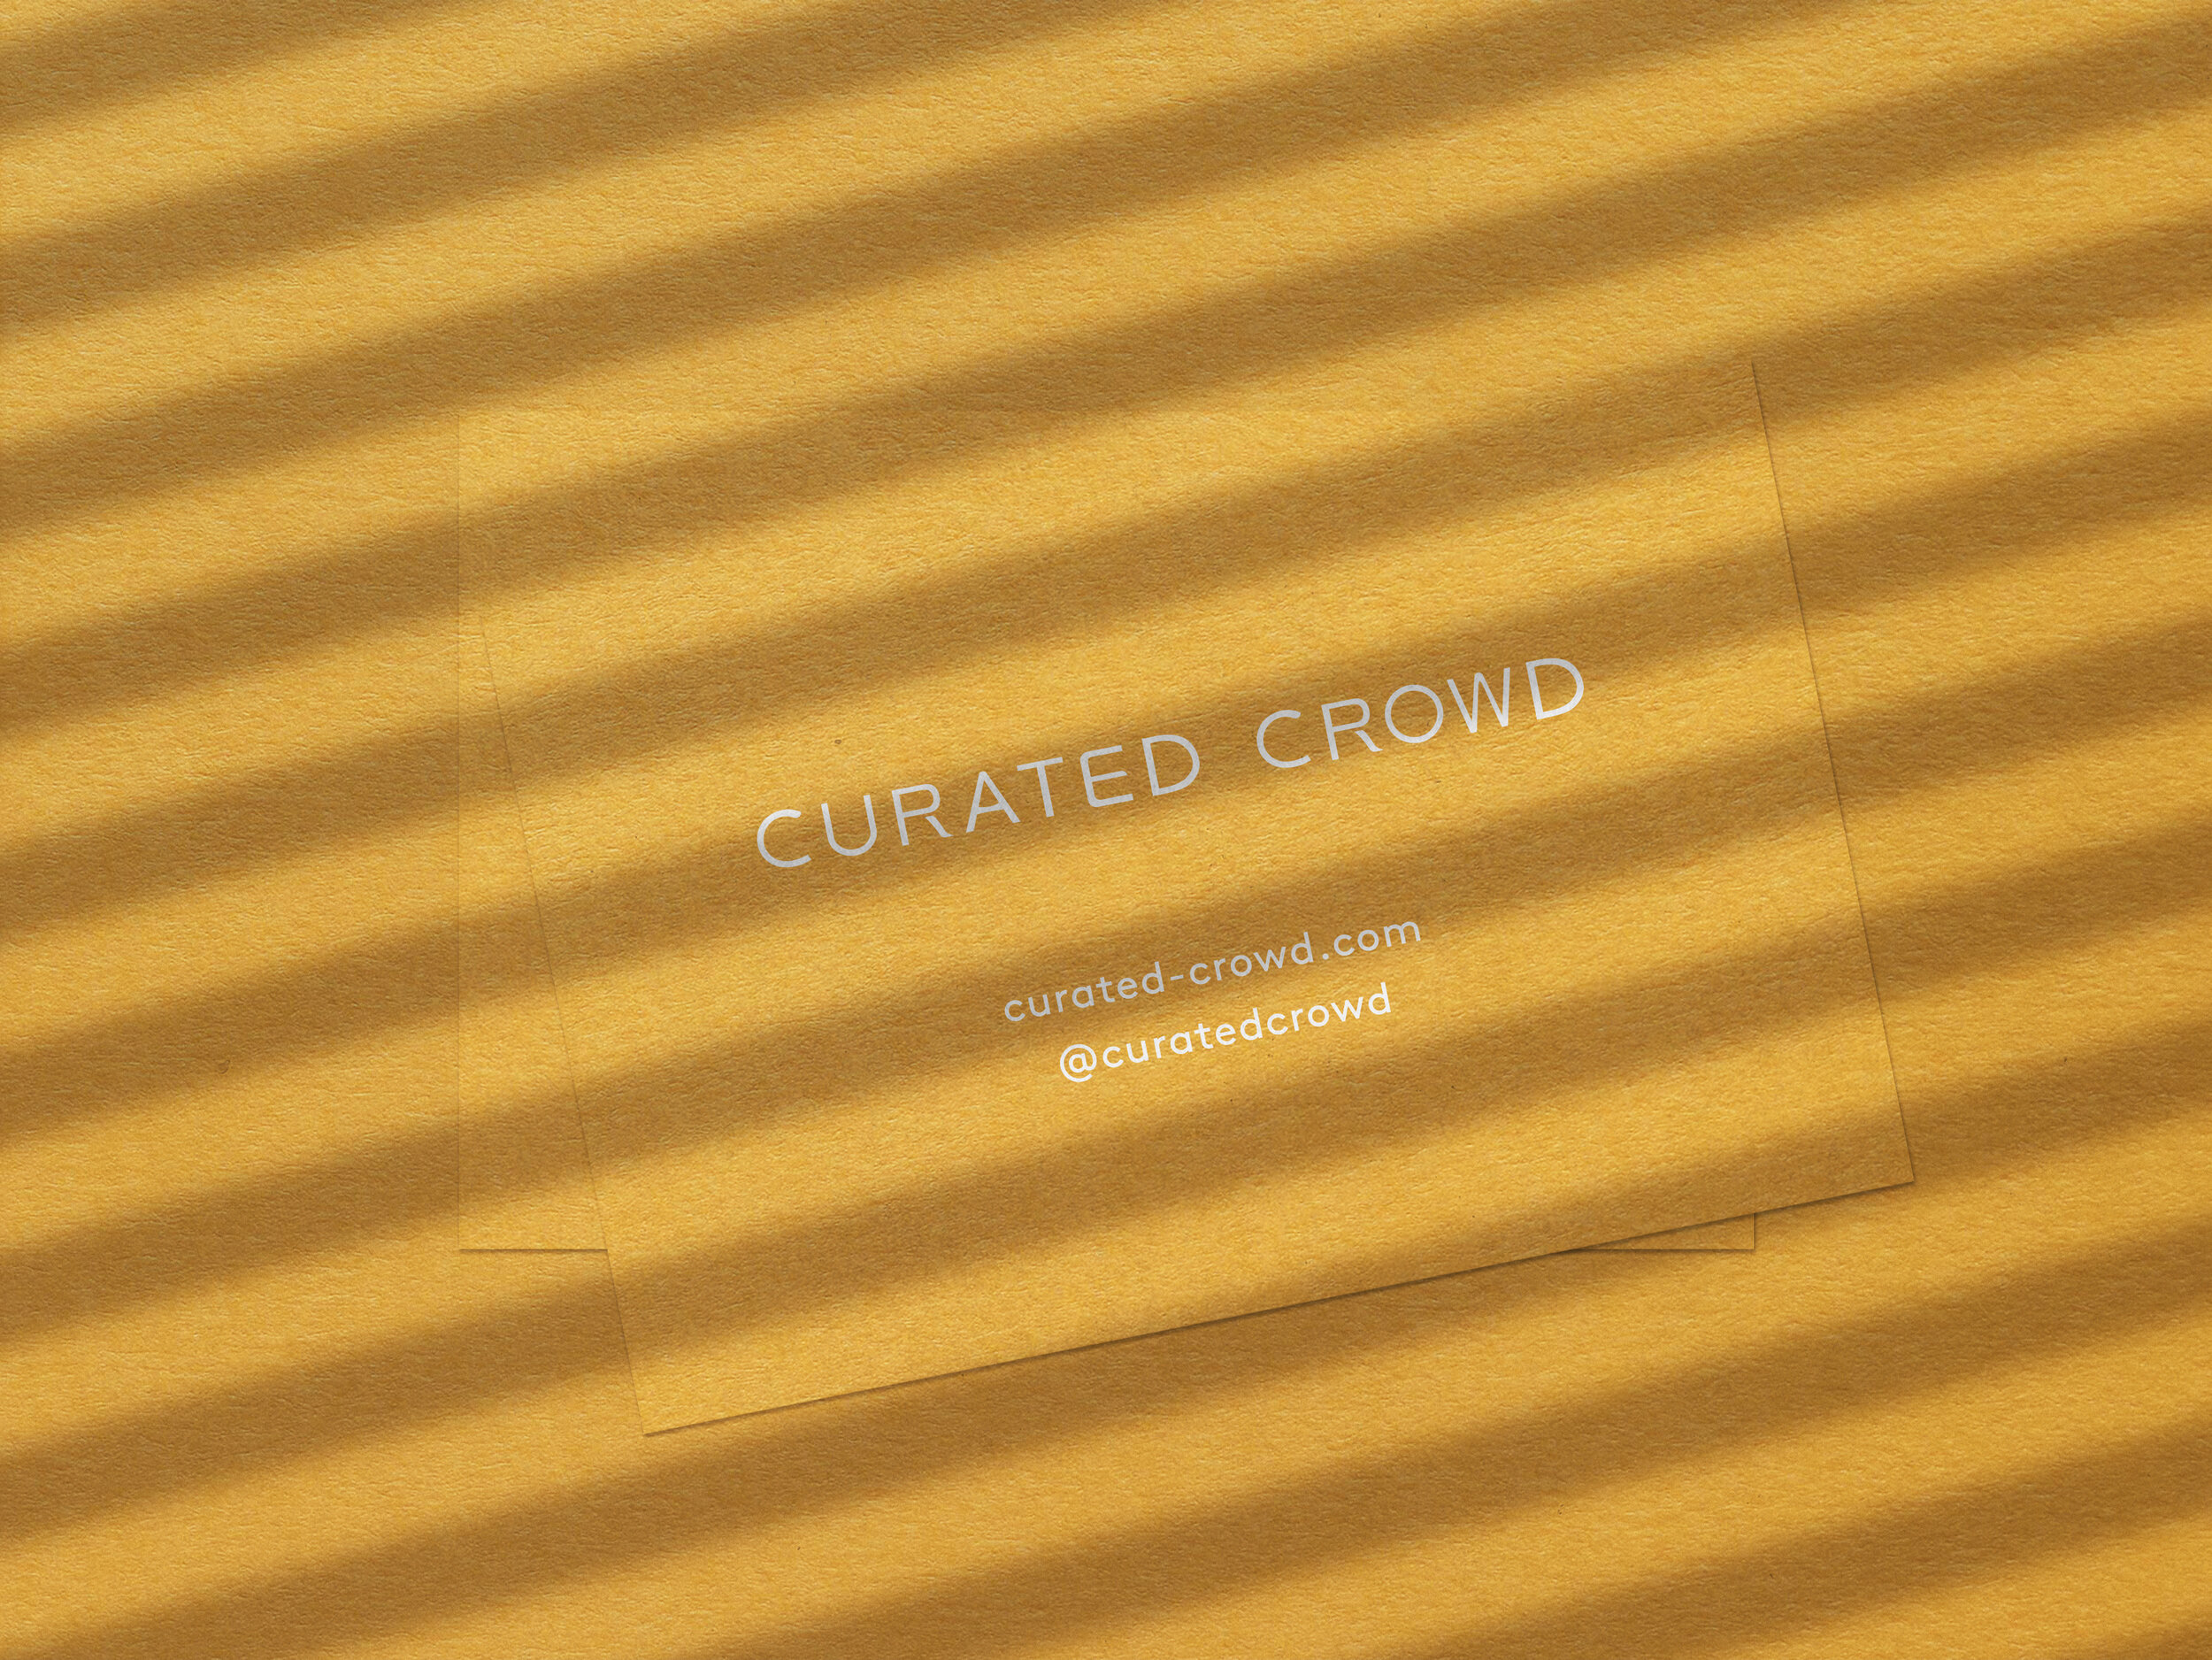 Curated Crowd_3.jpg